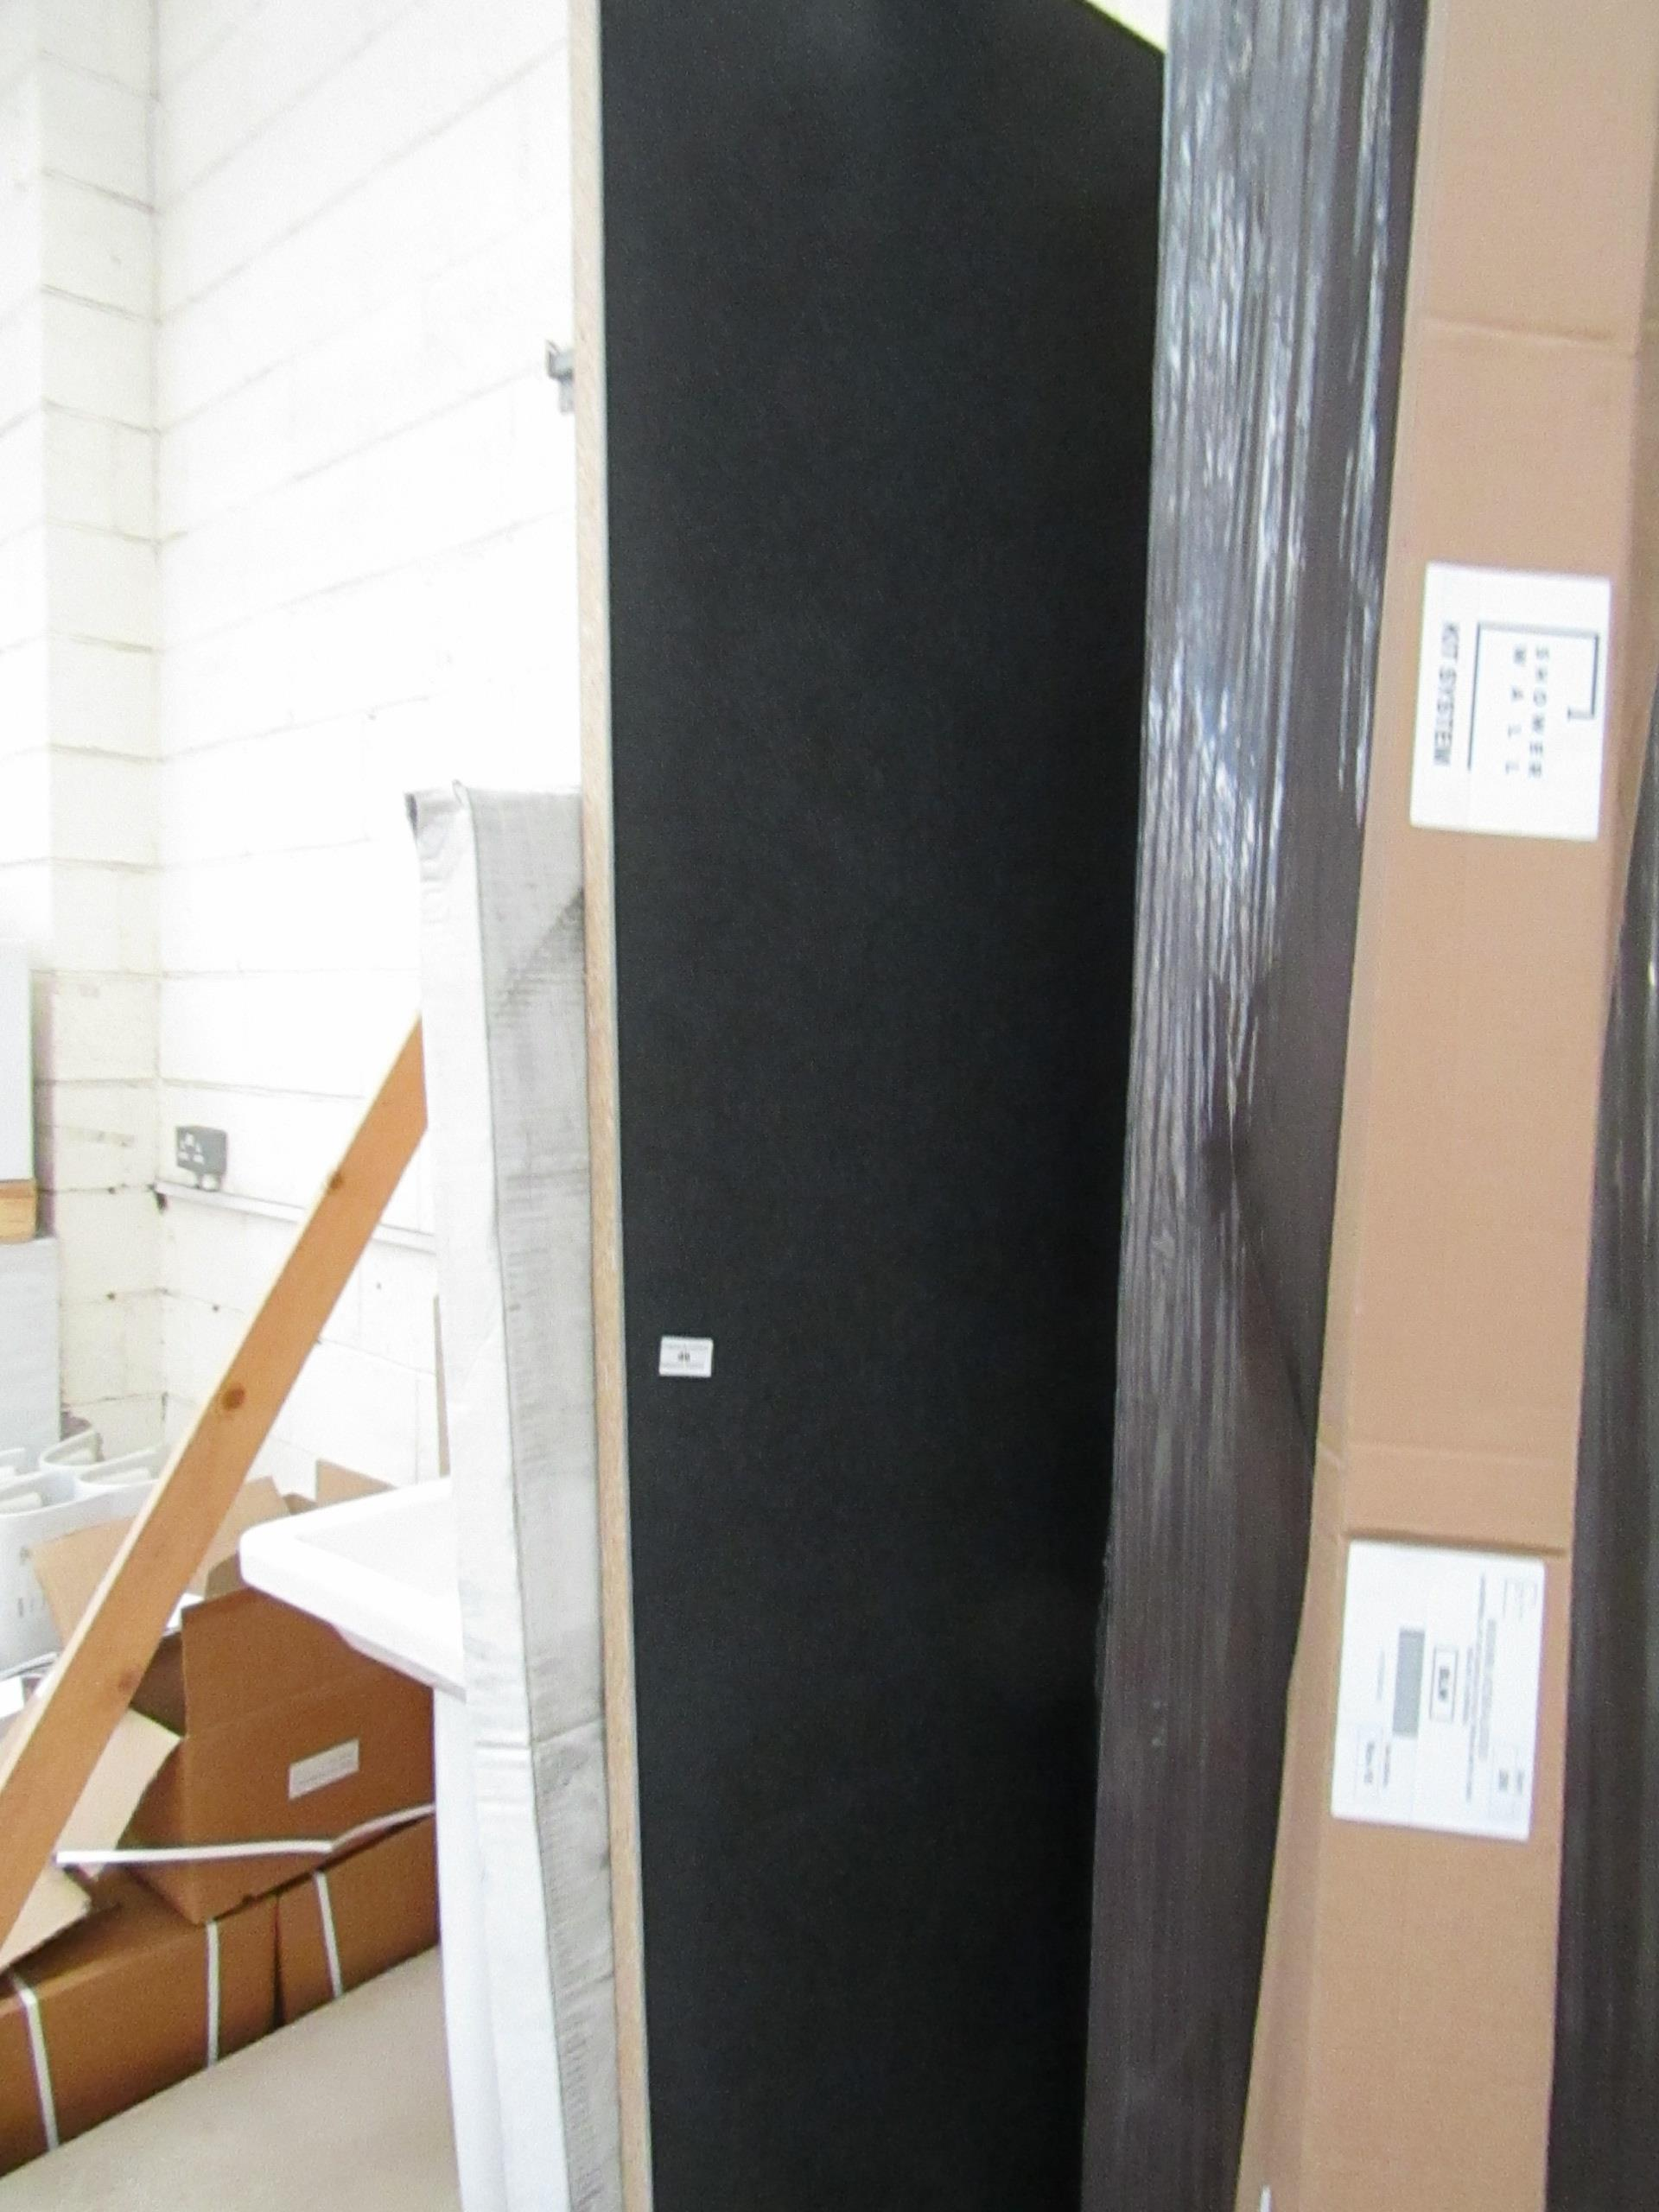 Lot 49 - Work Top Panel - 2400x600mm Includes 2 Shower Wall Kit Systems - New.